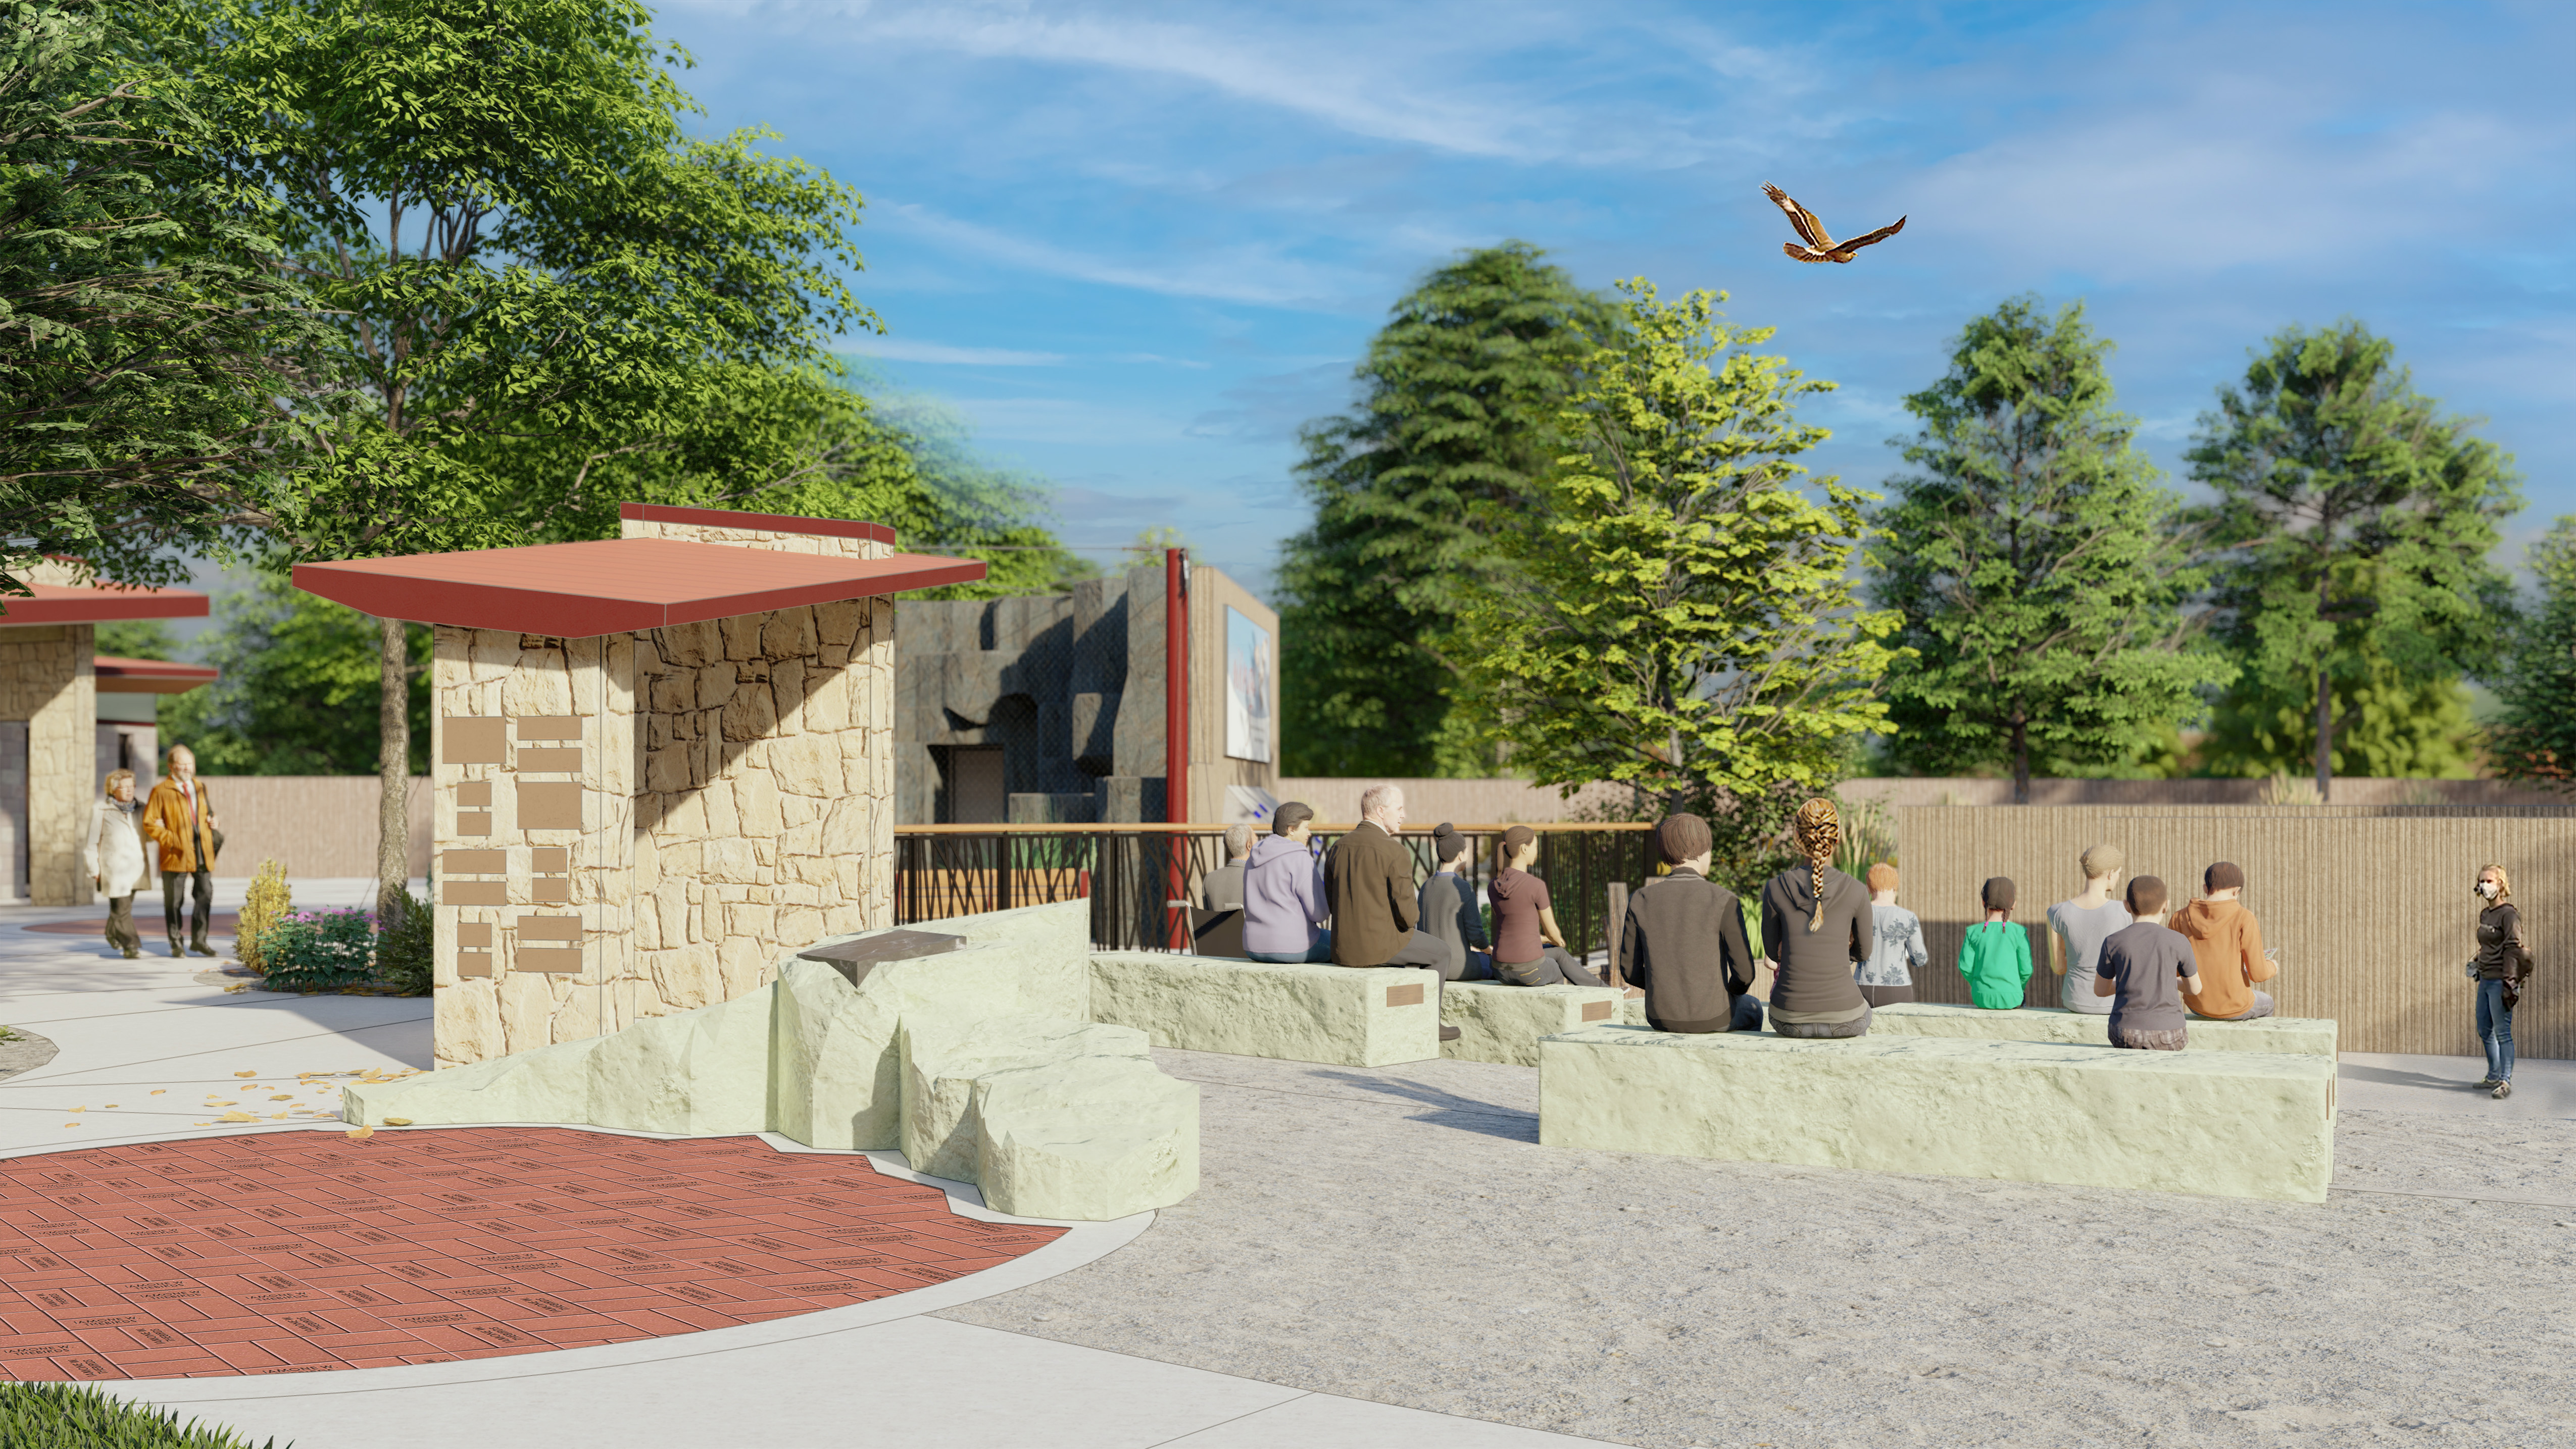 A rendering of the outdoor classroom showcasing the benches and bricks